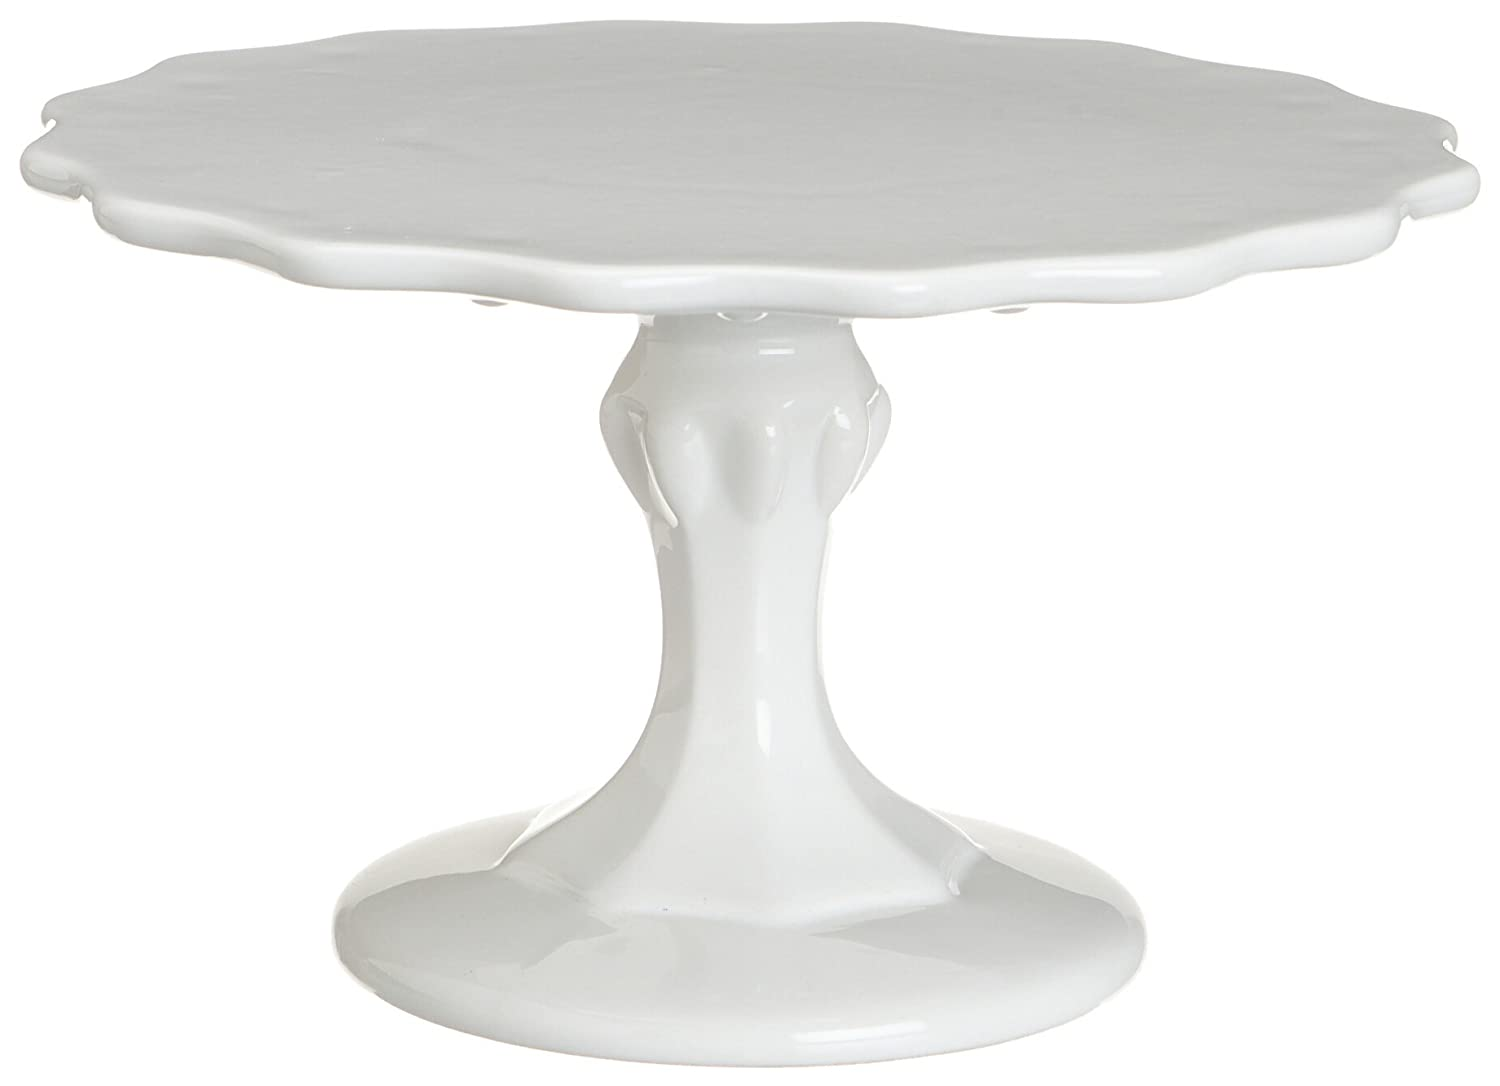 White Pedestal Cake Stand. Pedestal Footed Cake Stand with